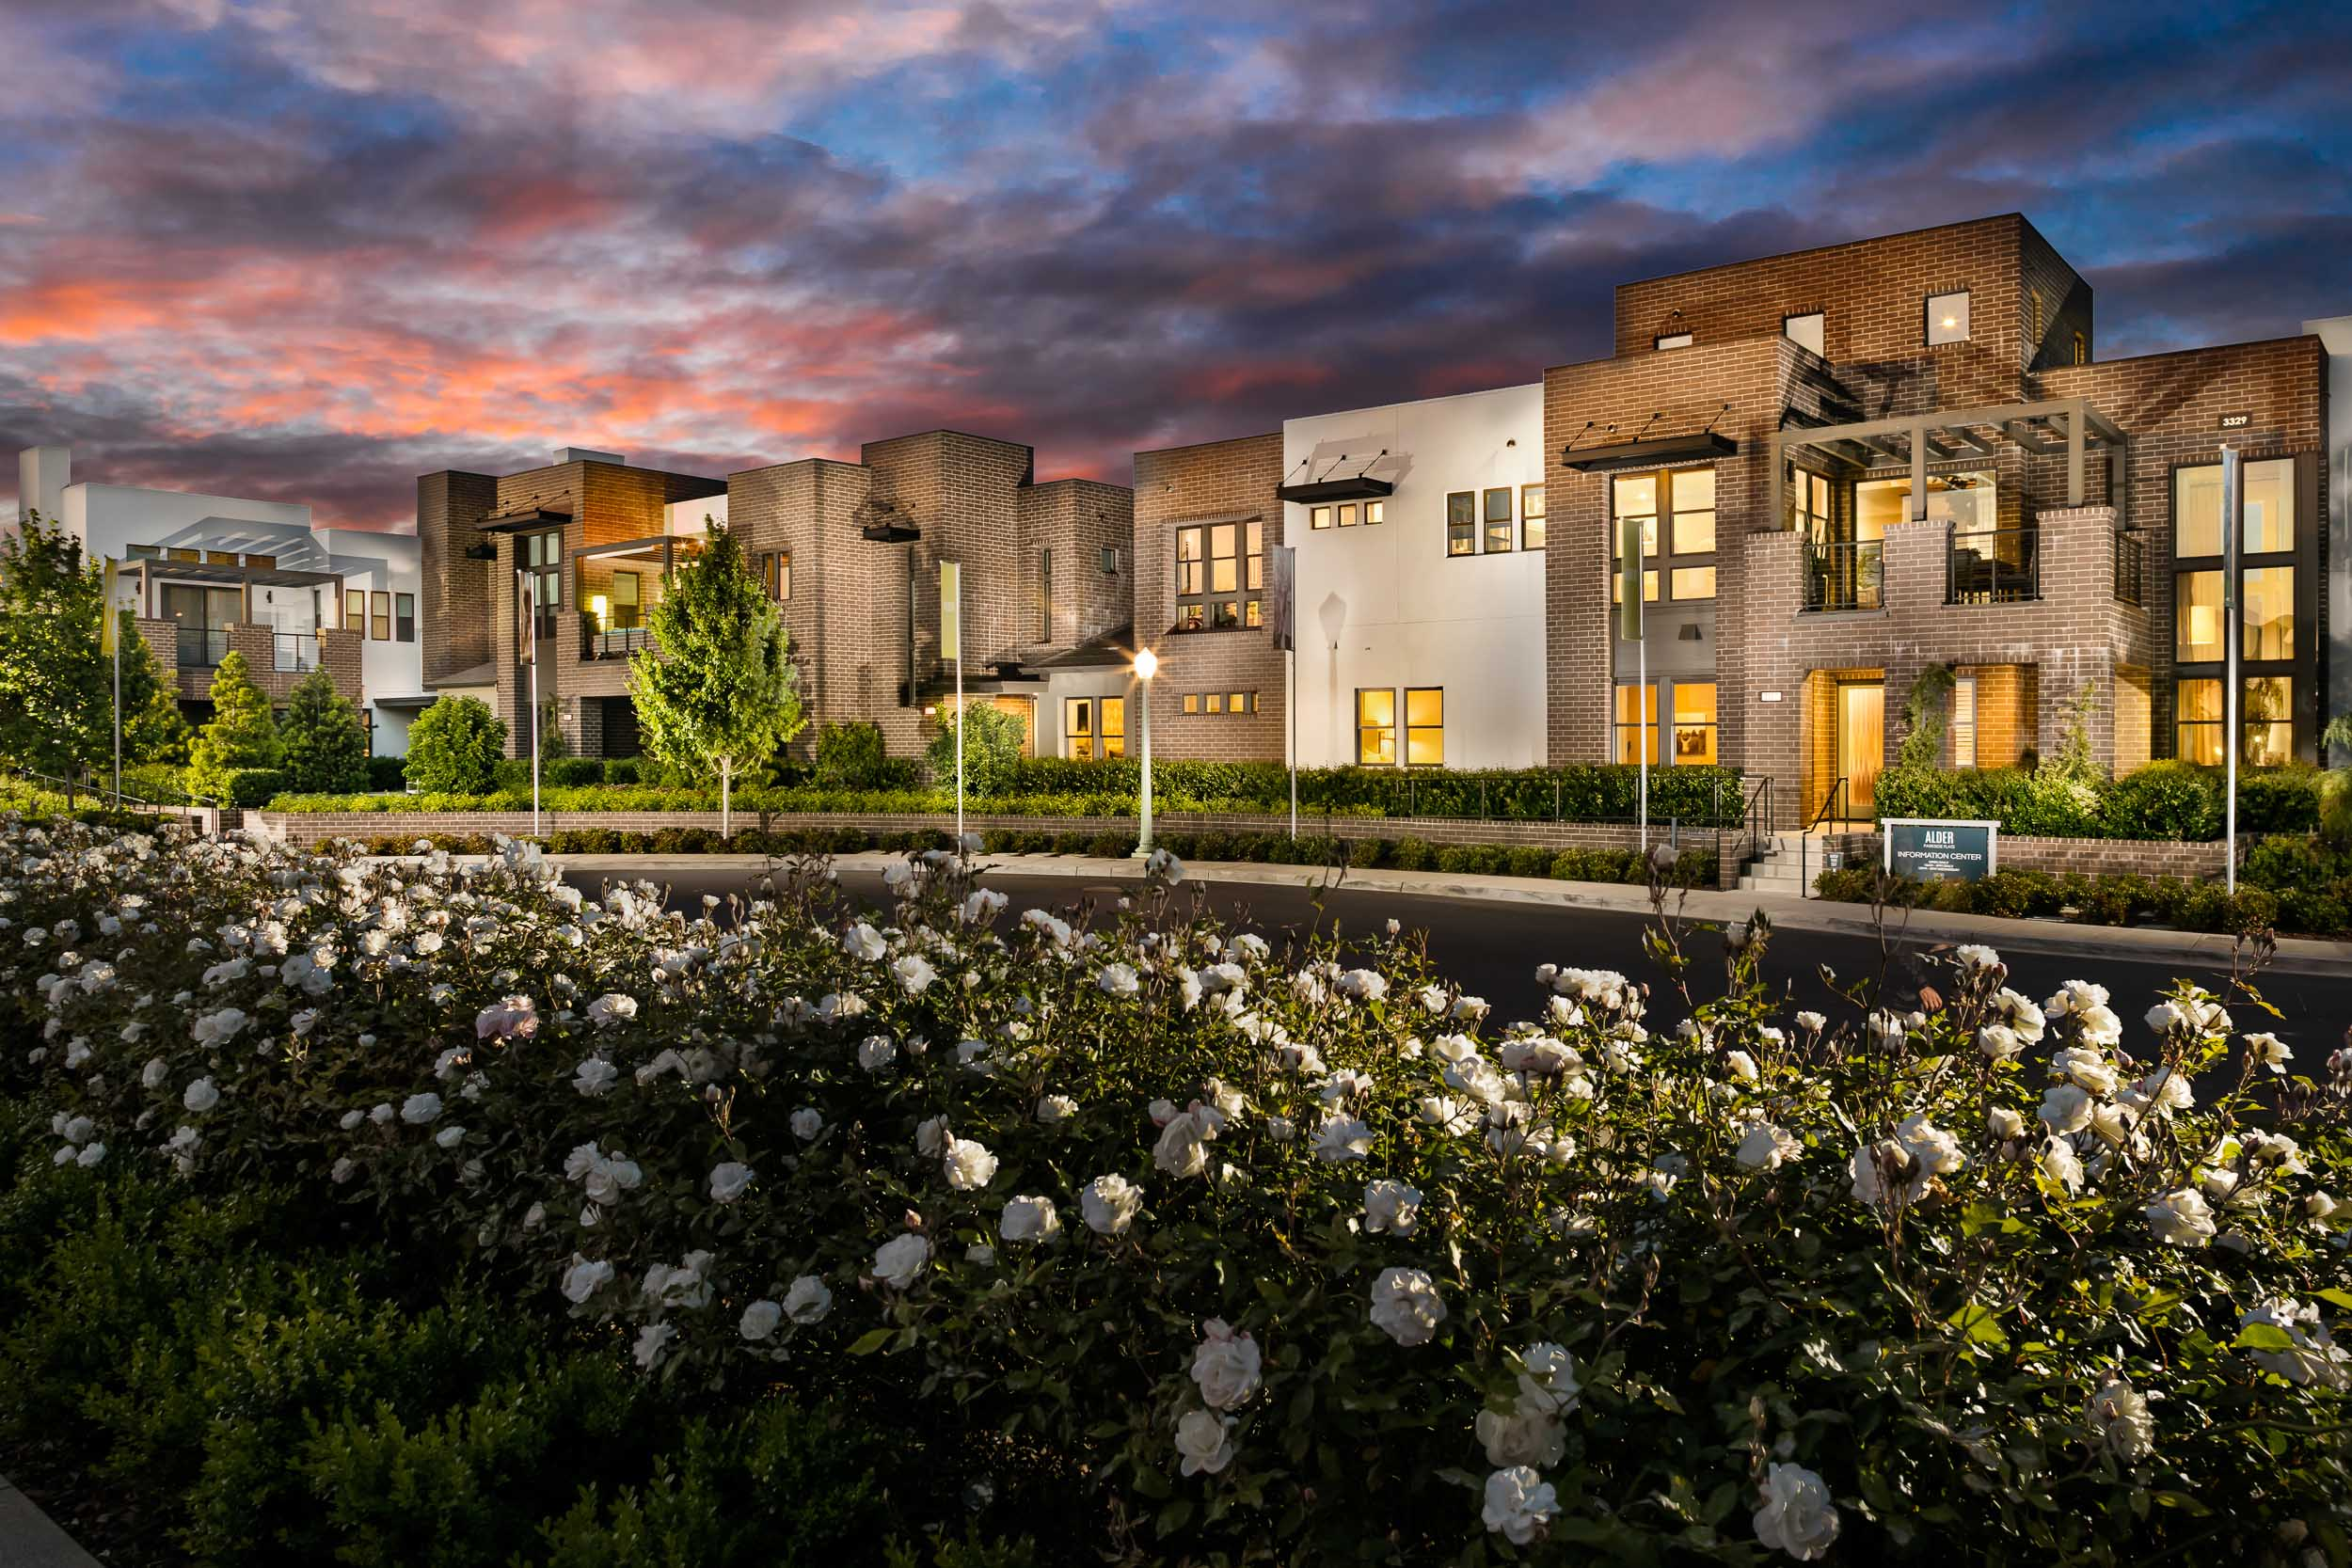 Alder at McKinley Village   | Sacramento, California    AWARDS  +  2018 National Silver Award  for Best Architectural Design of an Attached Community  +  2017 MAME Nor Cal Award  for Attached Community of the Year